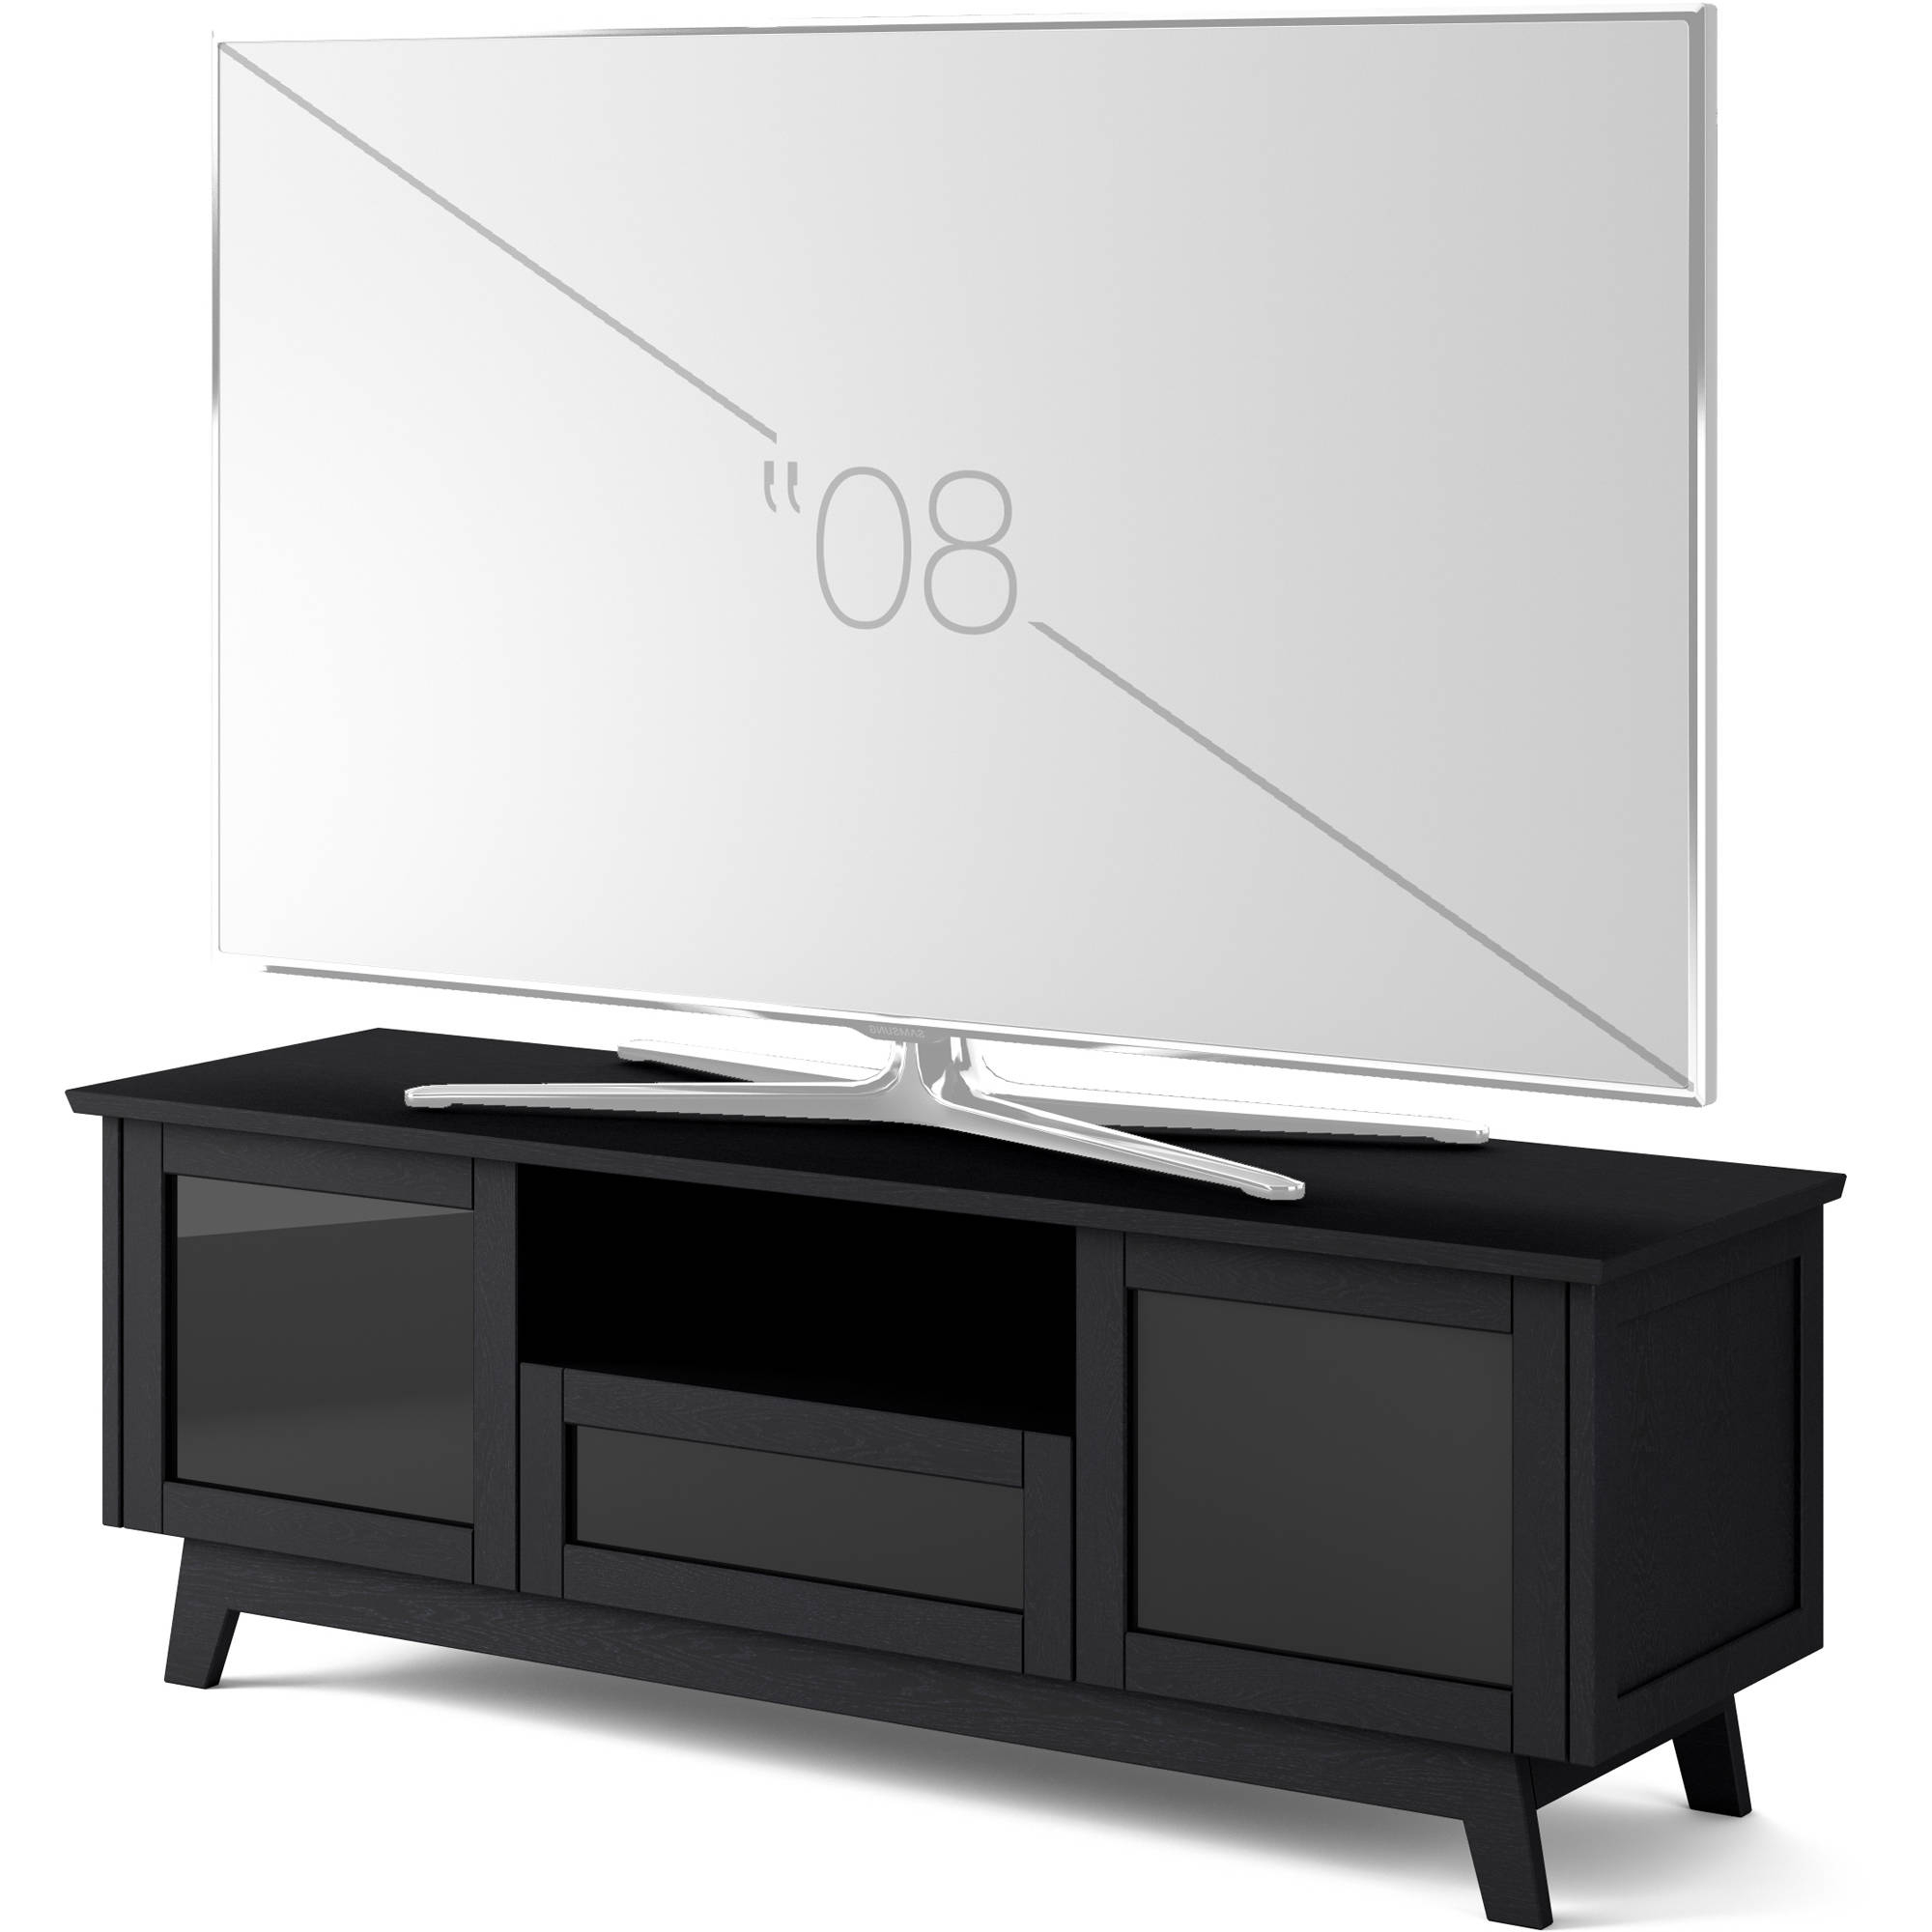 Newest Salamander Designs Audio/video Cabinet In Black Sdav5/7225/bo In Solar Refinement Sideboards (View 13 of 20)